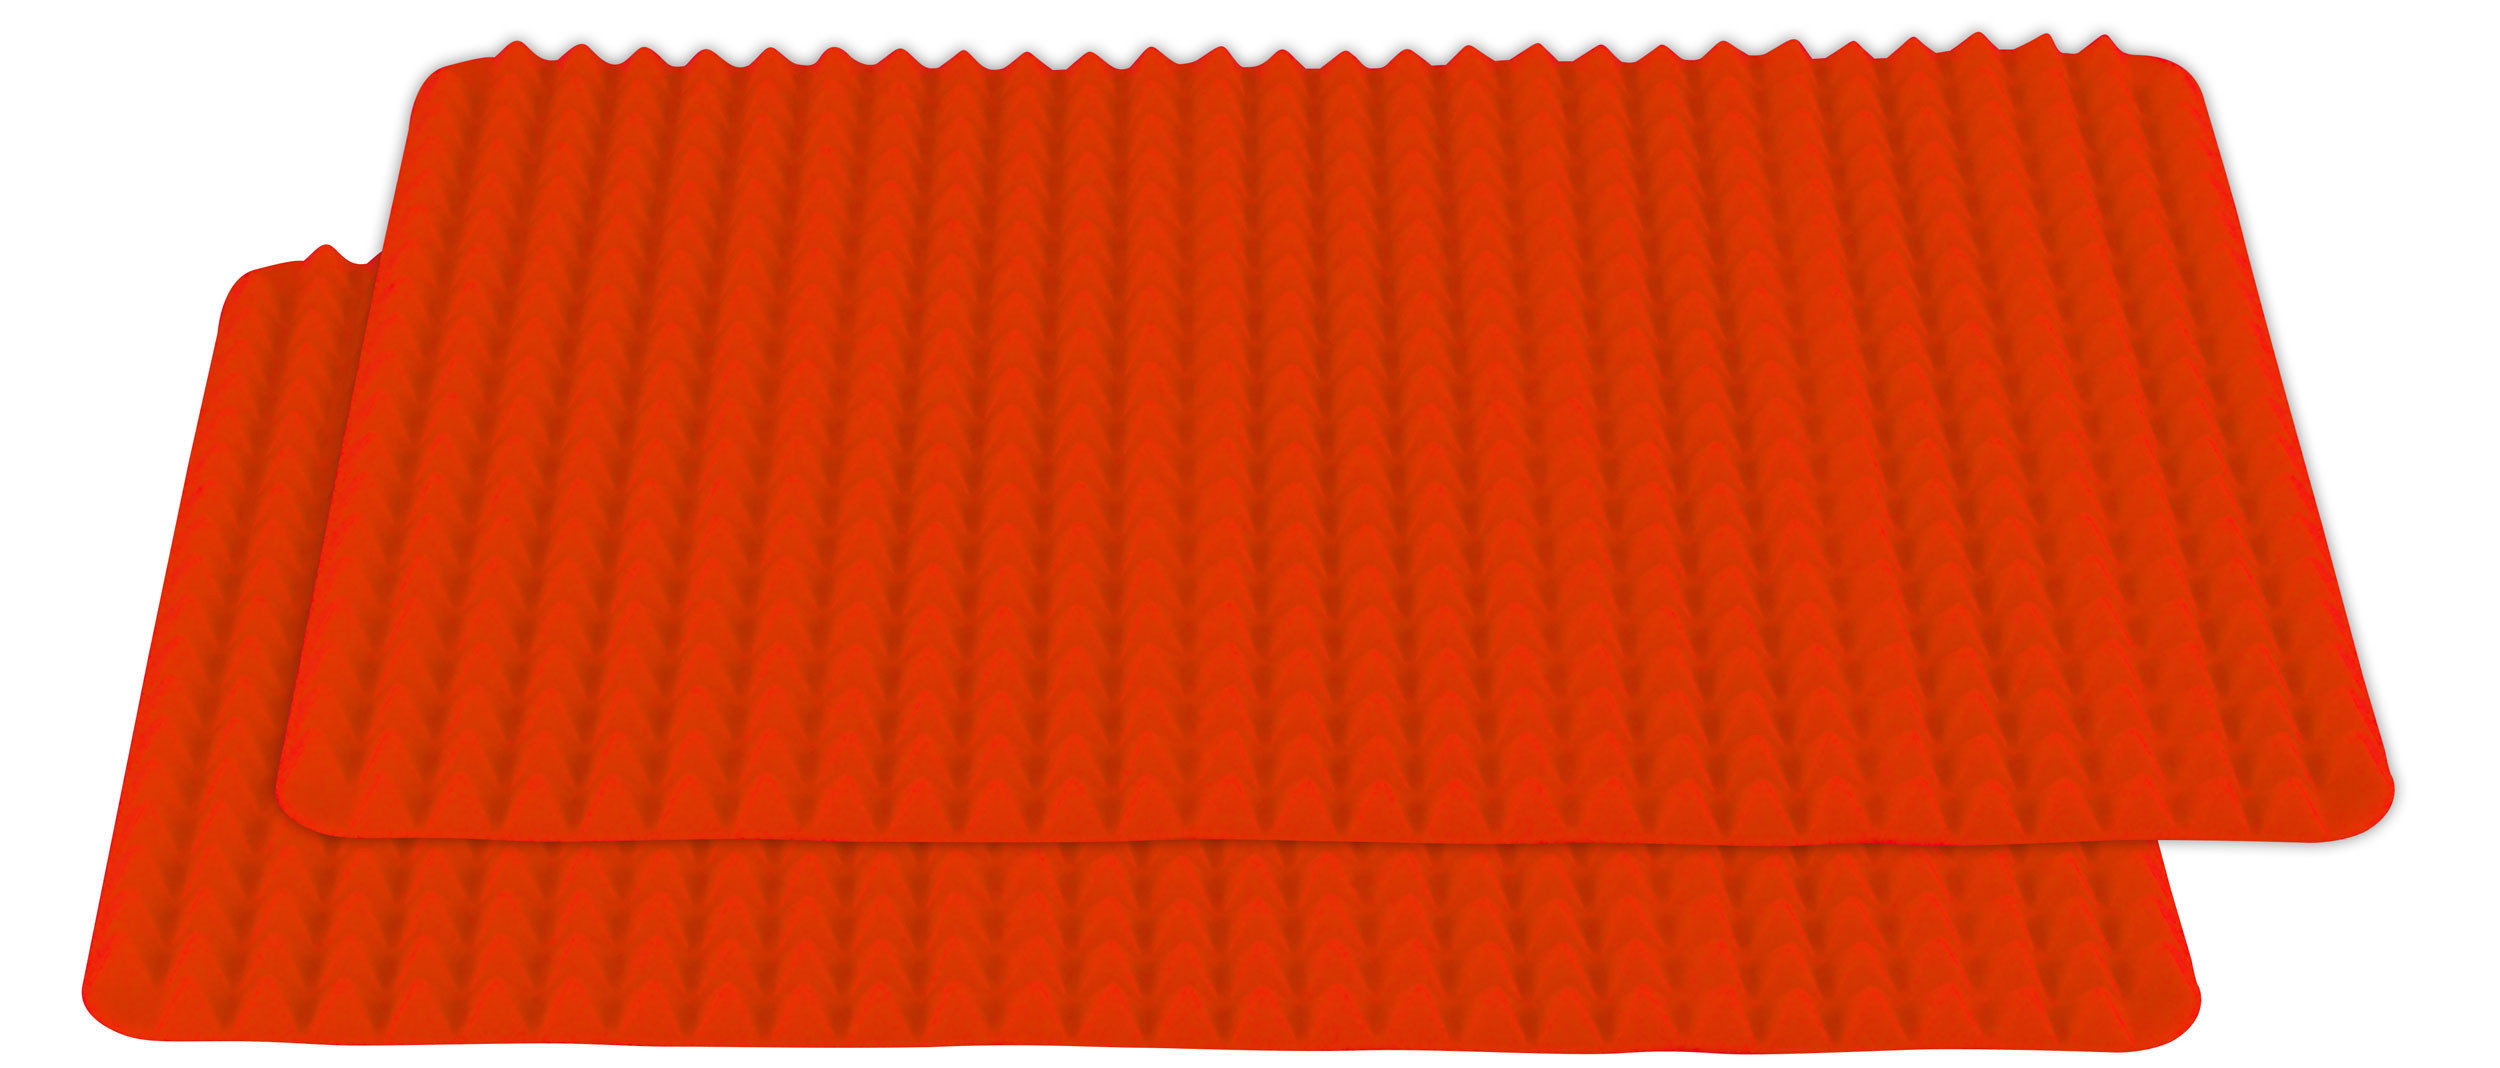 Healthy Homewares Silicone Baking Sheet, Red Set of 2